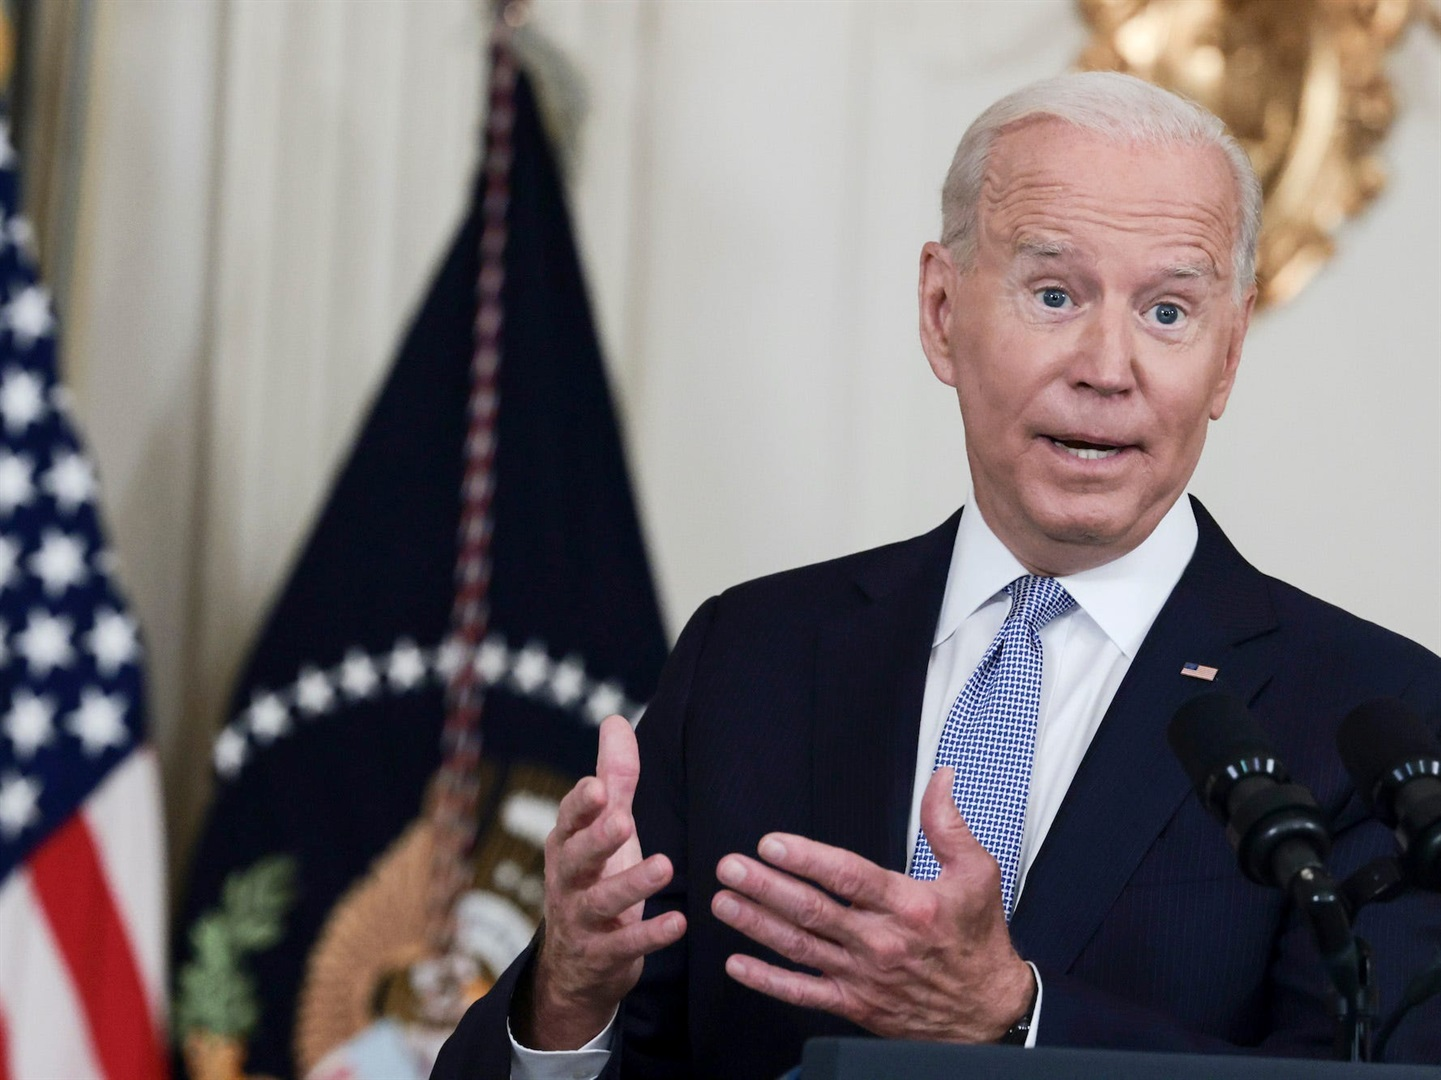 In recent congressional hearings into Afghanistan, Republicans used their time to goad the generals into blaming President Joe Biden, and Democrats expended equal energy diverting blame to previous Republican presidents, writes the author.